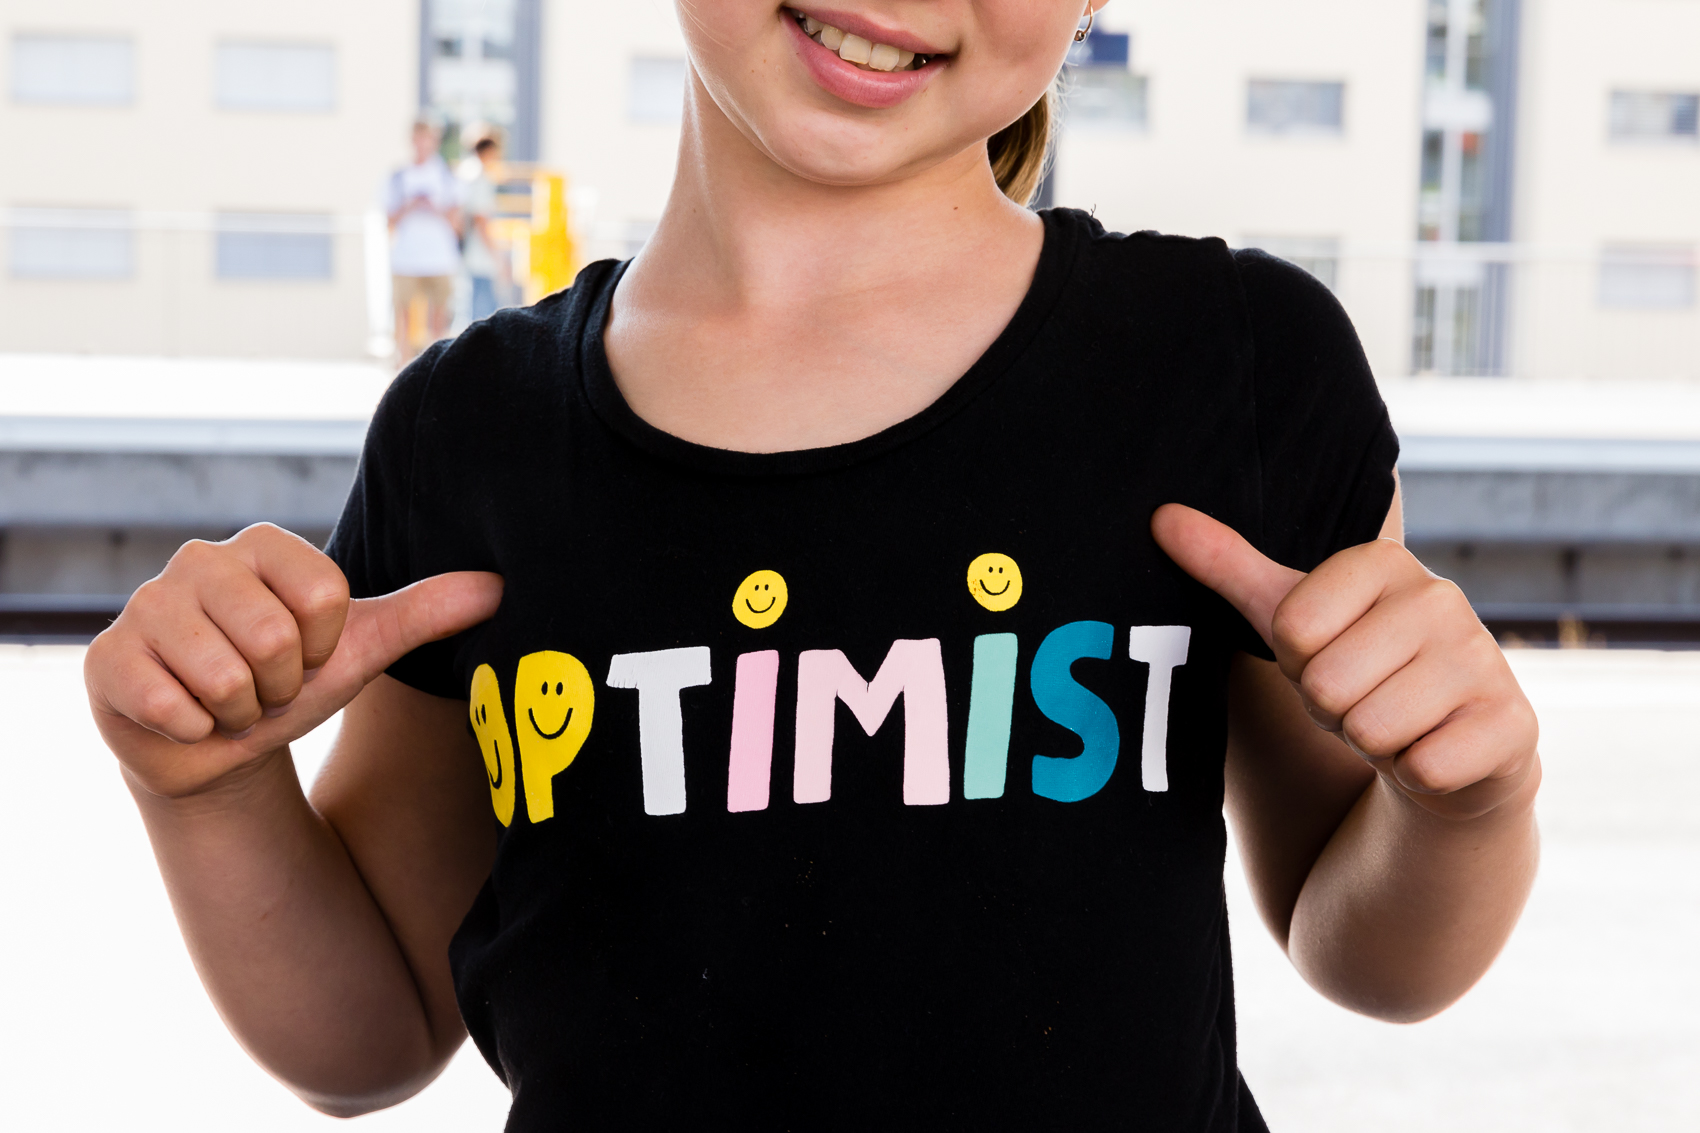 girls with optimist on her shirt thumbs pointing to it